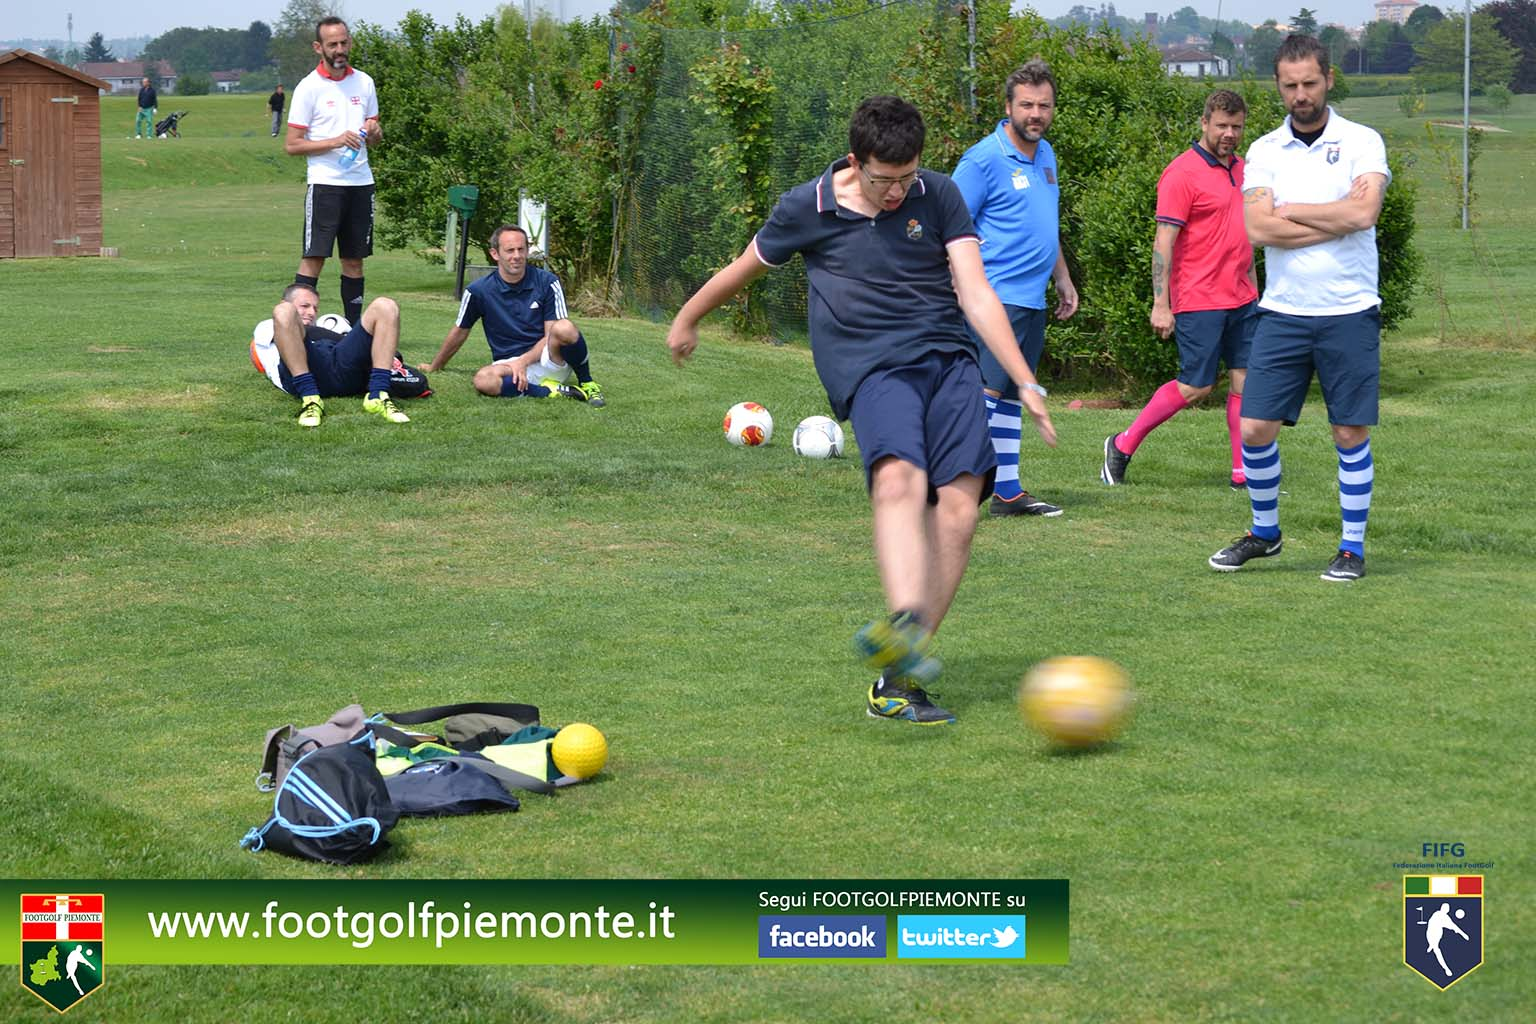 FOTO 9 Regions' Cup Footgolf Piemonte 2016 Golf Città di Asti (At) 30apr16-88